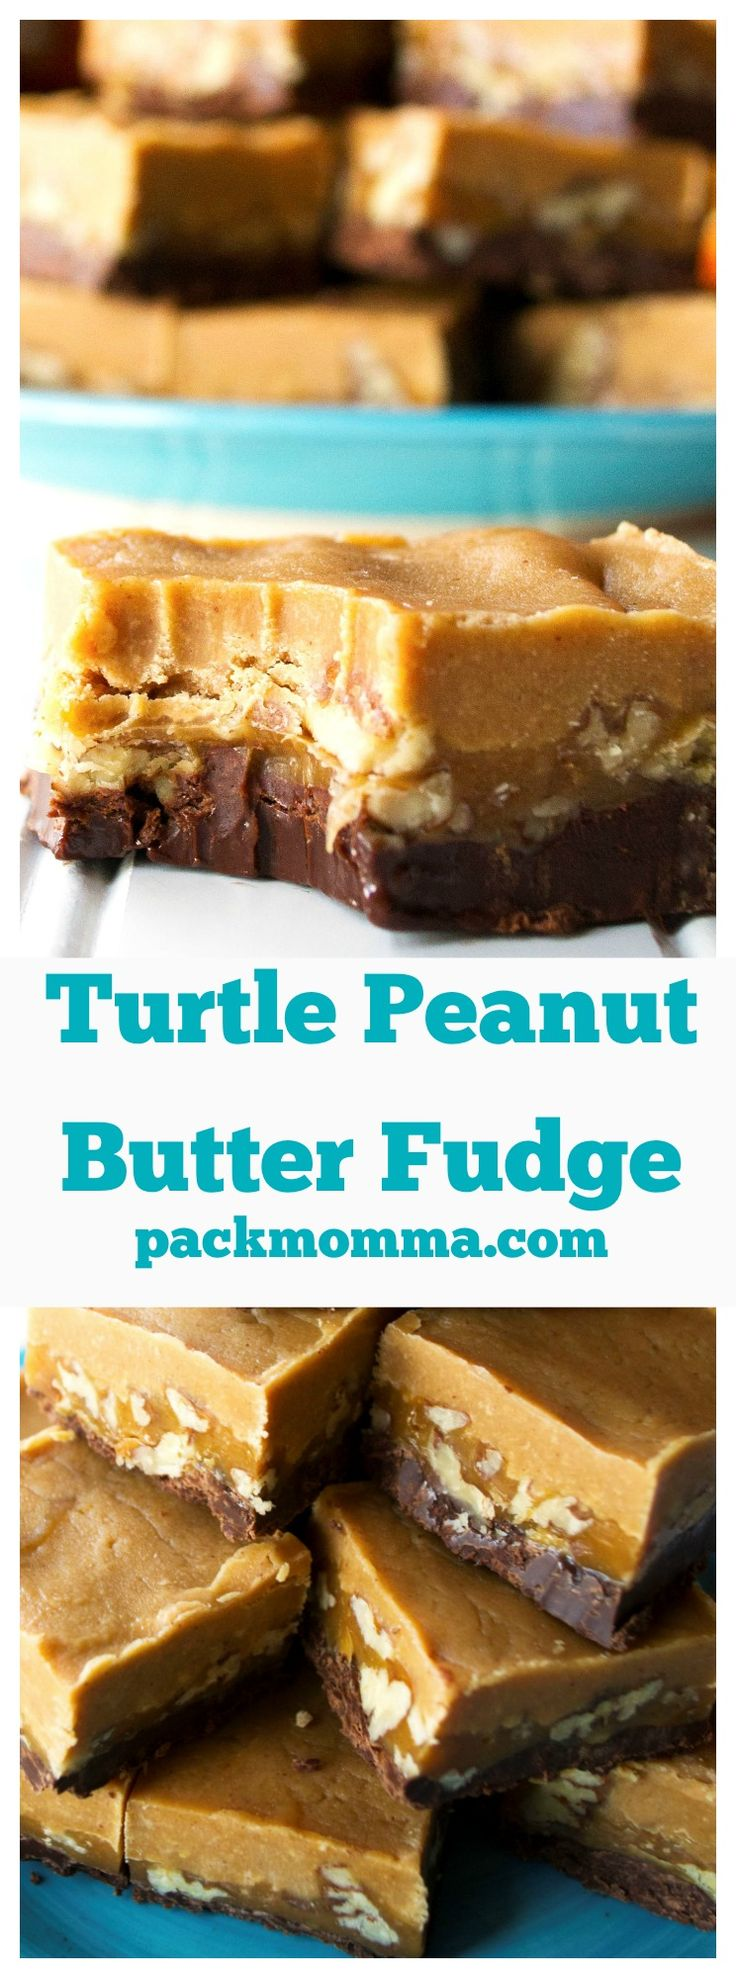 Turtle Peanut Butter Fudge | An easy no-bake recipe for creamy, rich, decadent Turtle Peanut Butter Fudge. | Pack Momma | www.packmomma.com